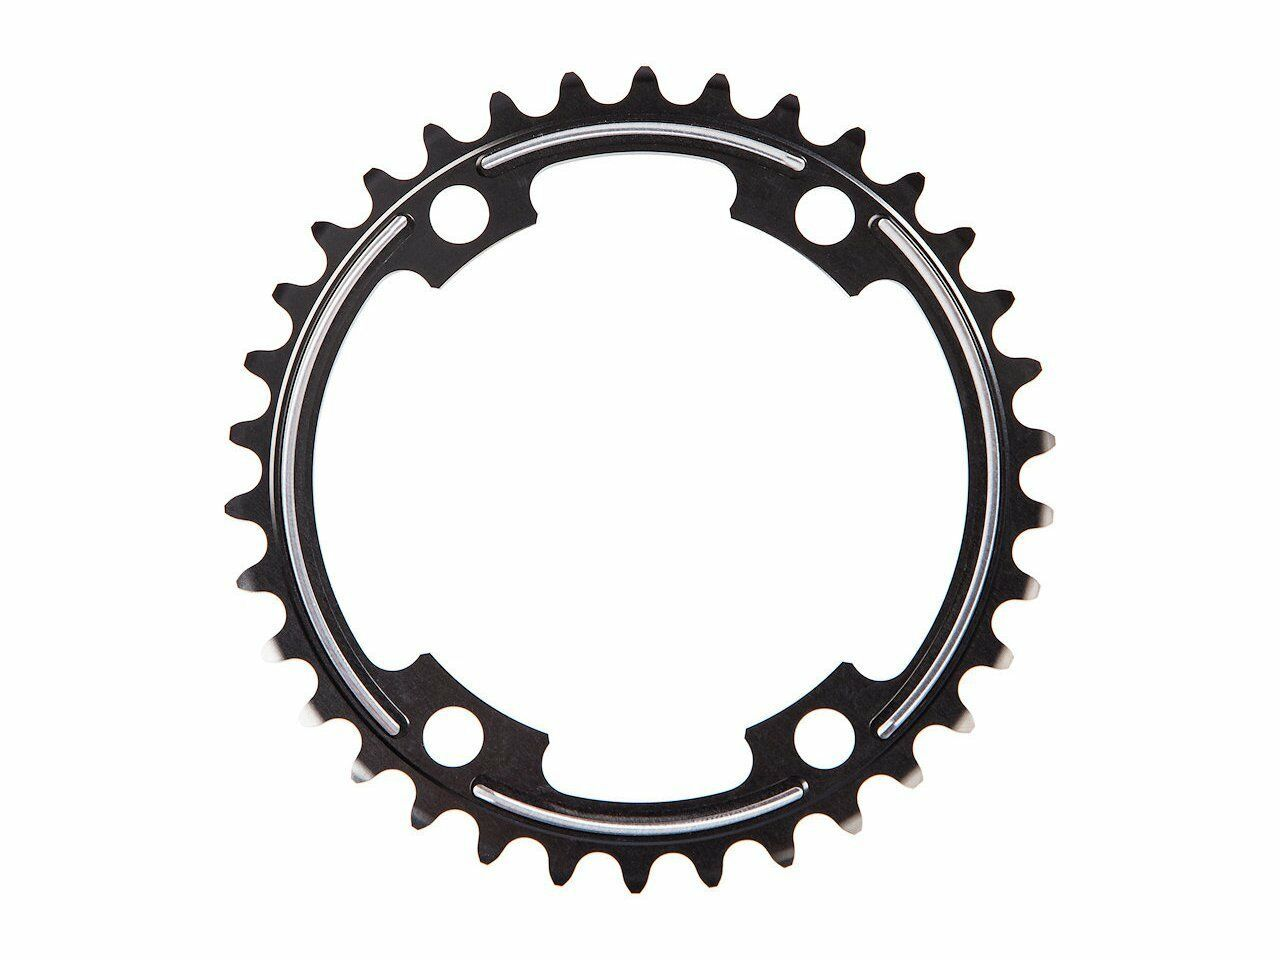 Shimano Dura-Ace FC-9000 34T Chainring - MA - 50 34T Group - Y1N234000, 11 Speed